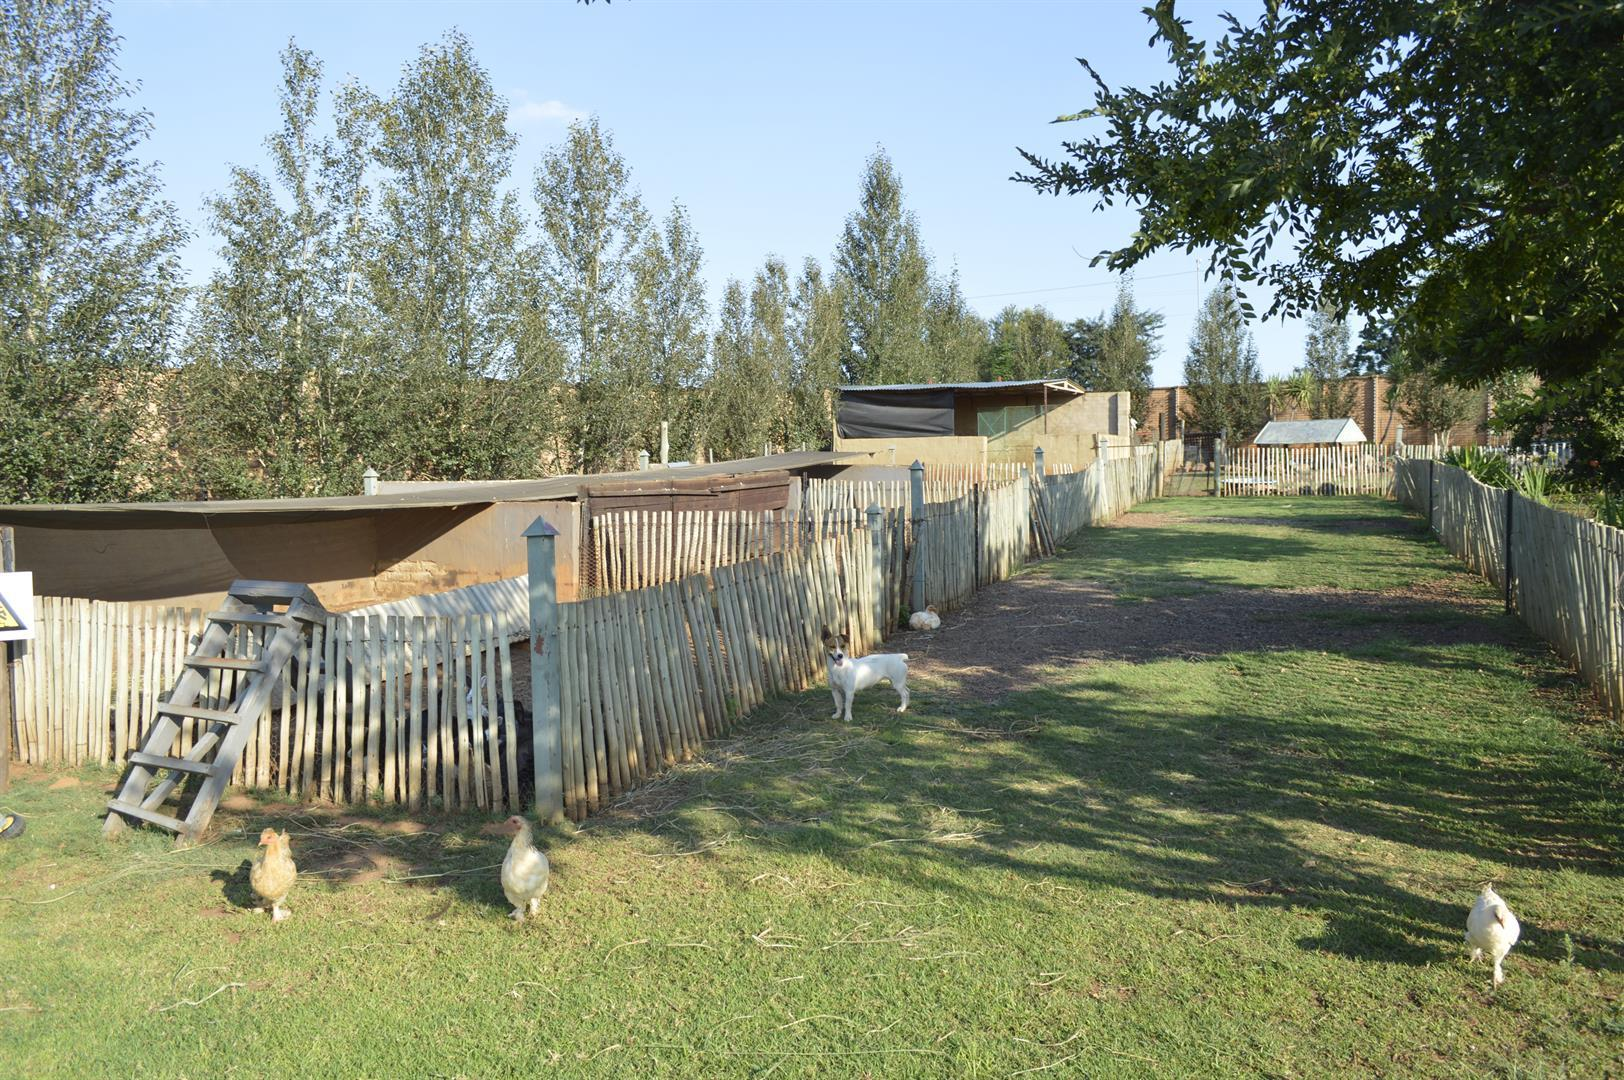 Raslouw A H property for sale. Ref No: 13442161. Picture no 31